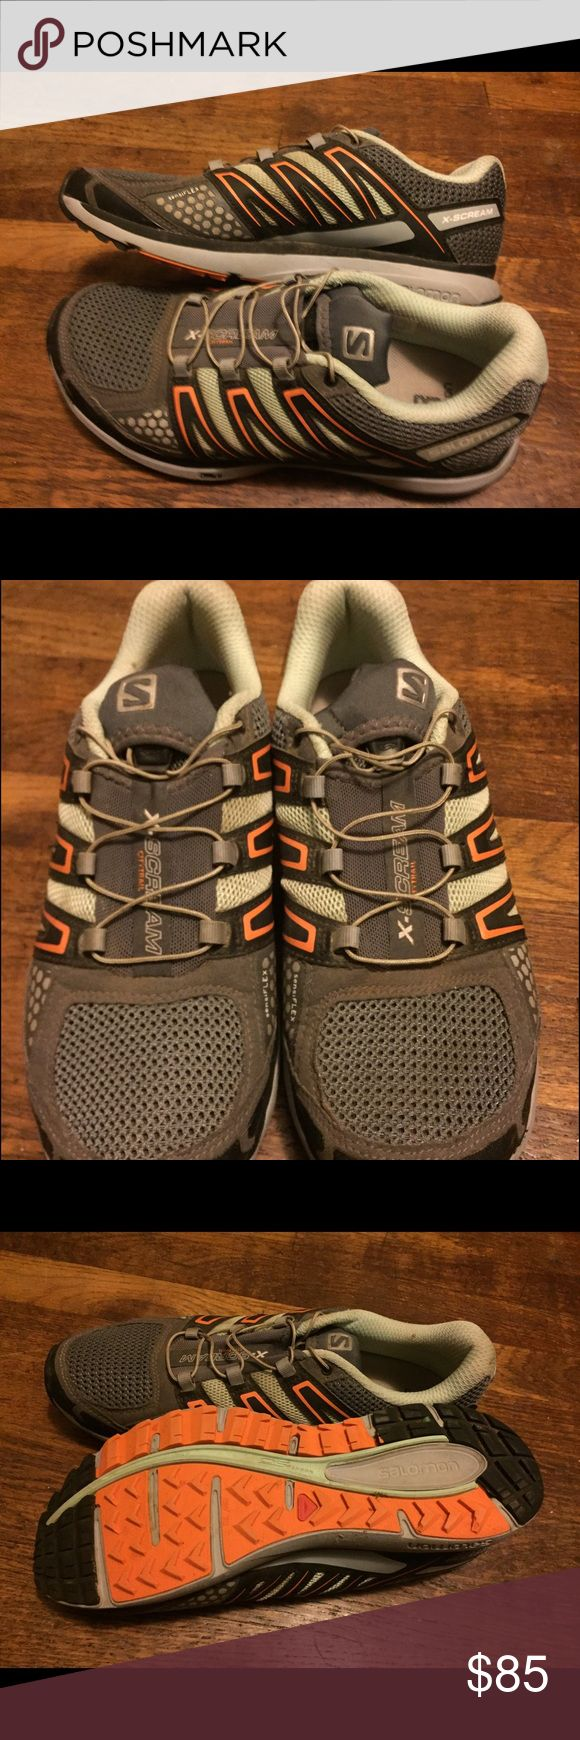 Women's Salomon X-Scream Trail Running shoes 8.5 Gently used, Salomon X-Scream Trail Running shoes. Neutral running shoe with durable, aggressive lugs for traction on the trail, great shoes! Salomon Shoes Athletic Shoes